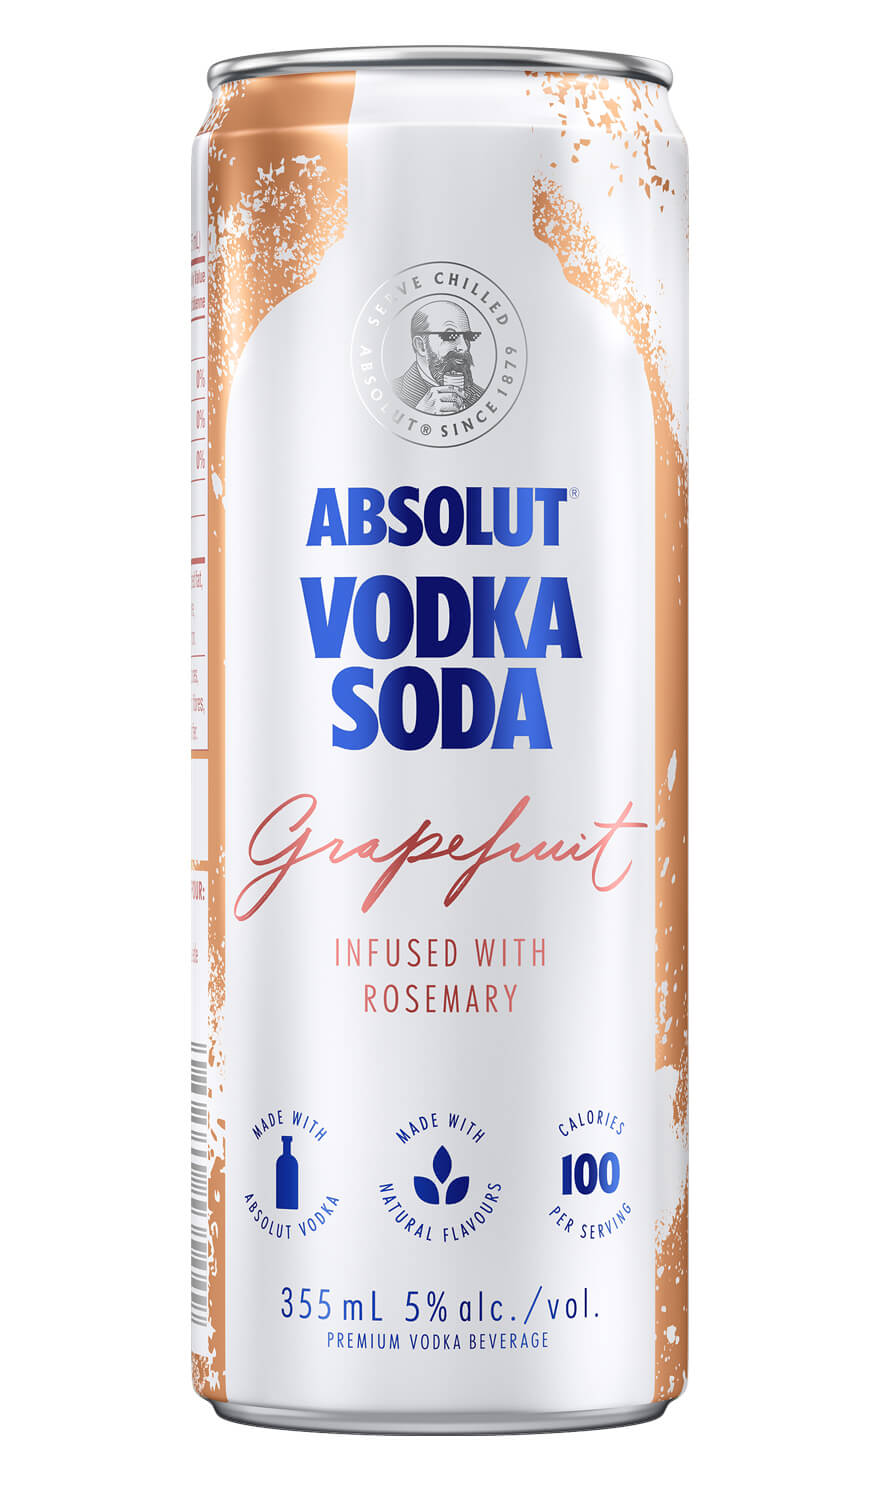 Absolut Vodka Soda Grapefruit & Rosemary